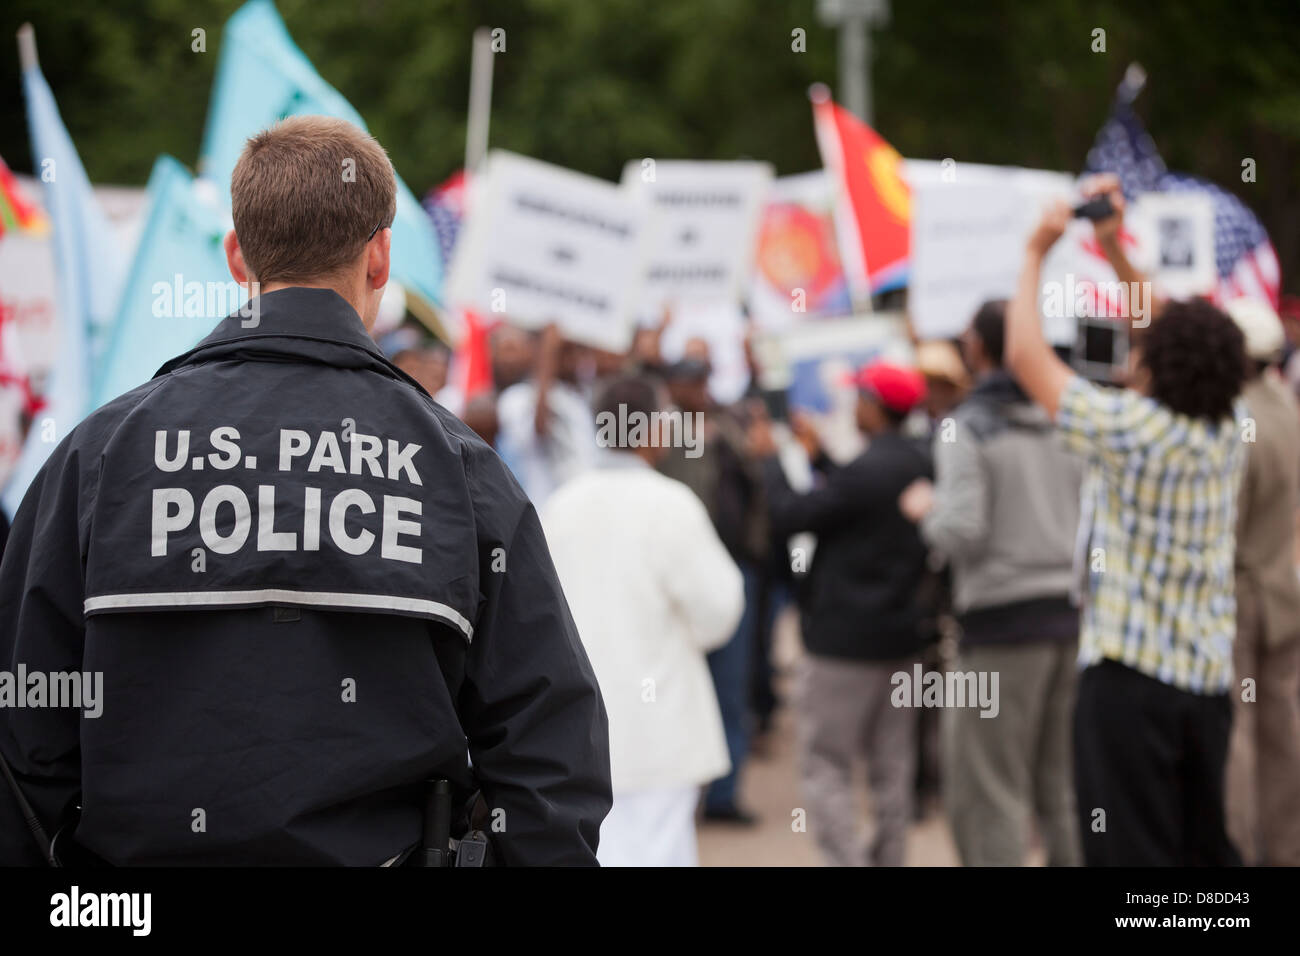 US Park Policeman monitoring demonstrators - Washington, DC USA - Stock Image